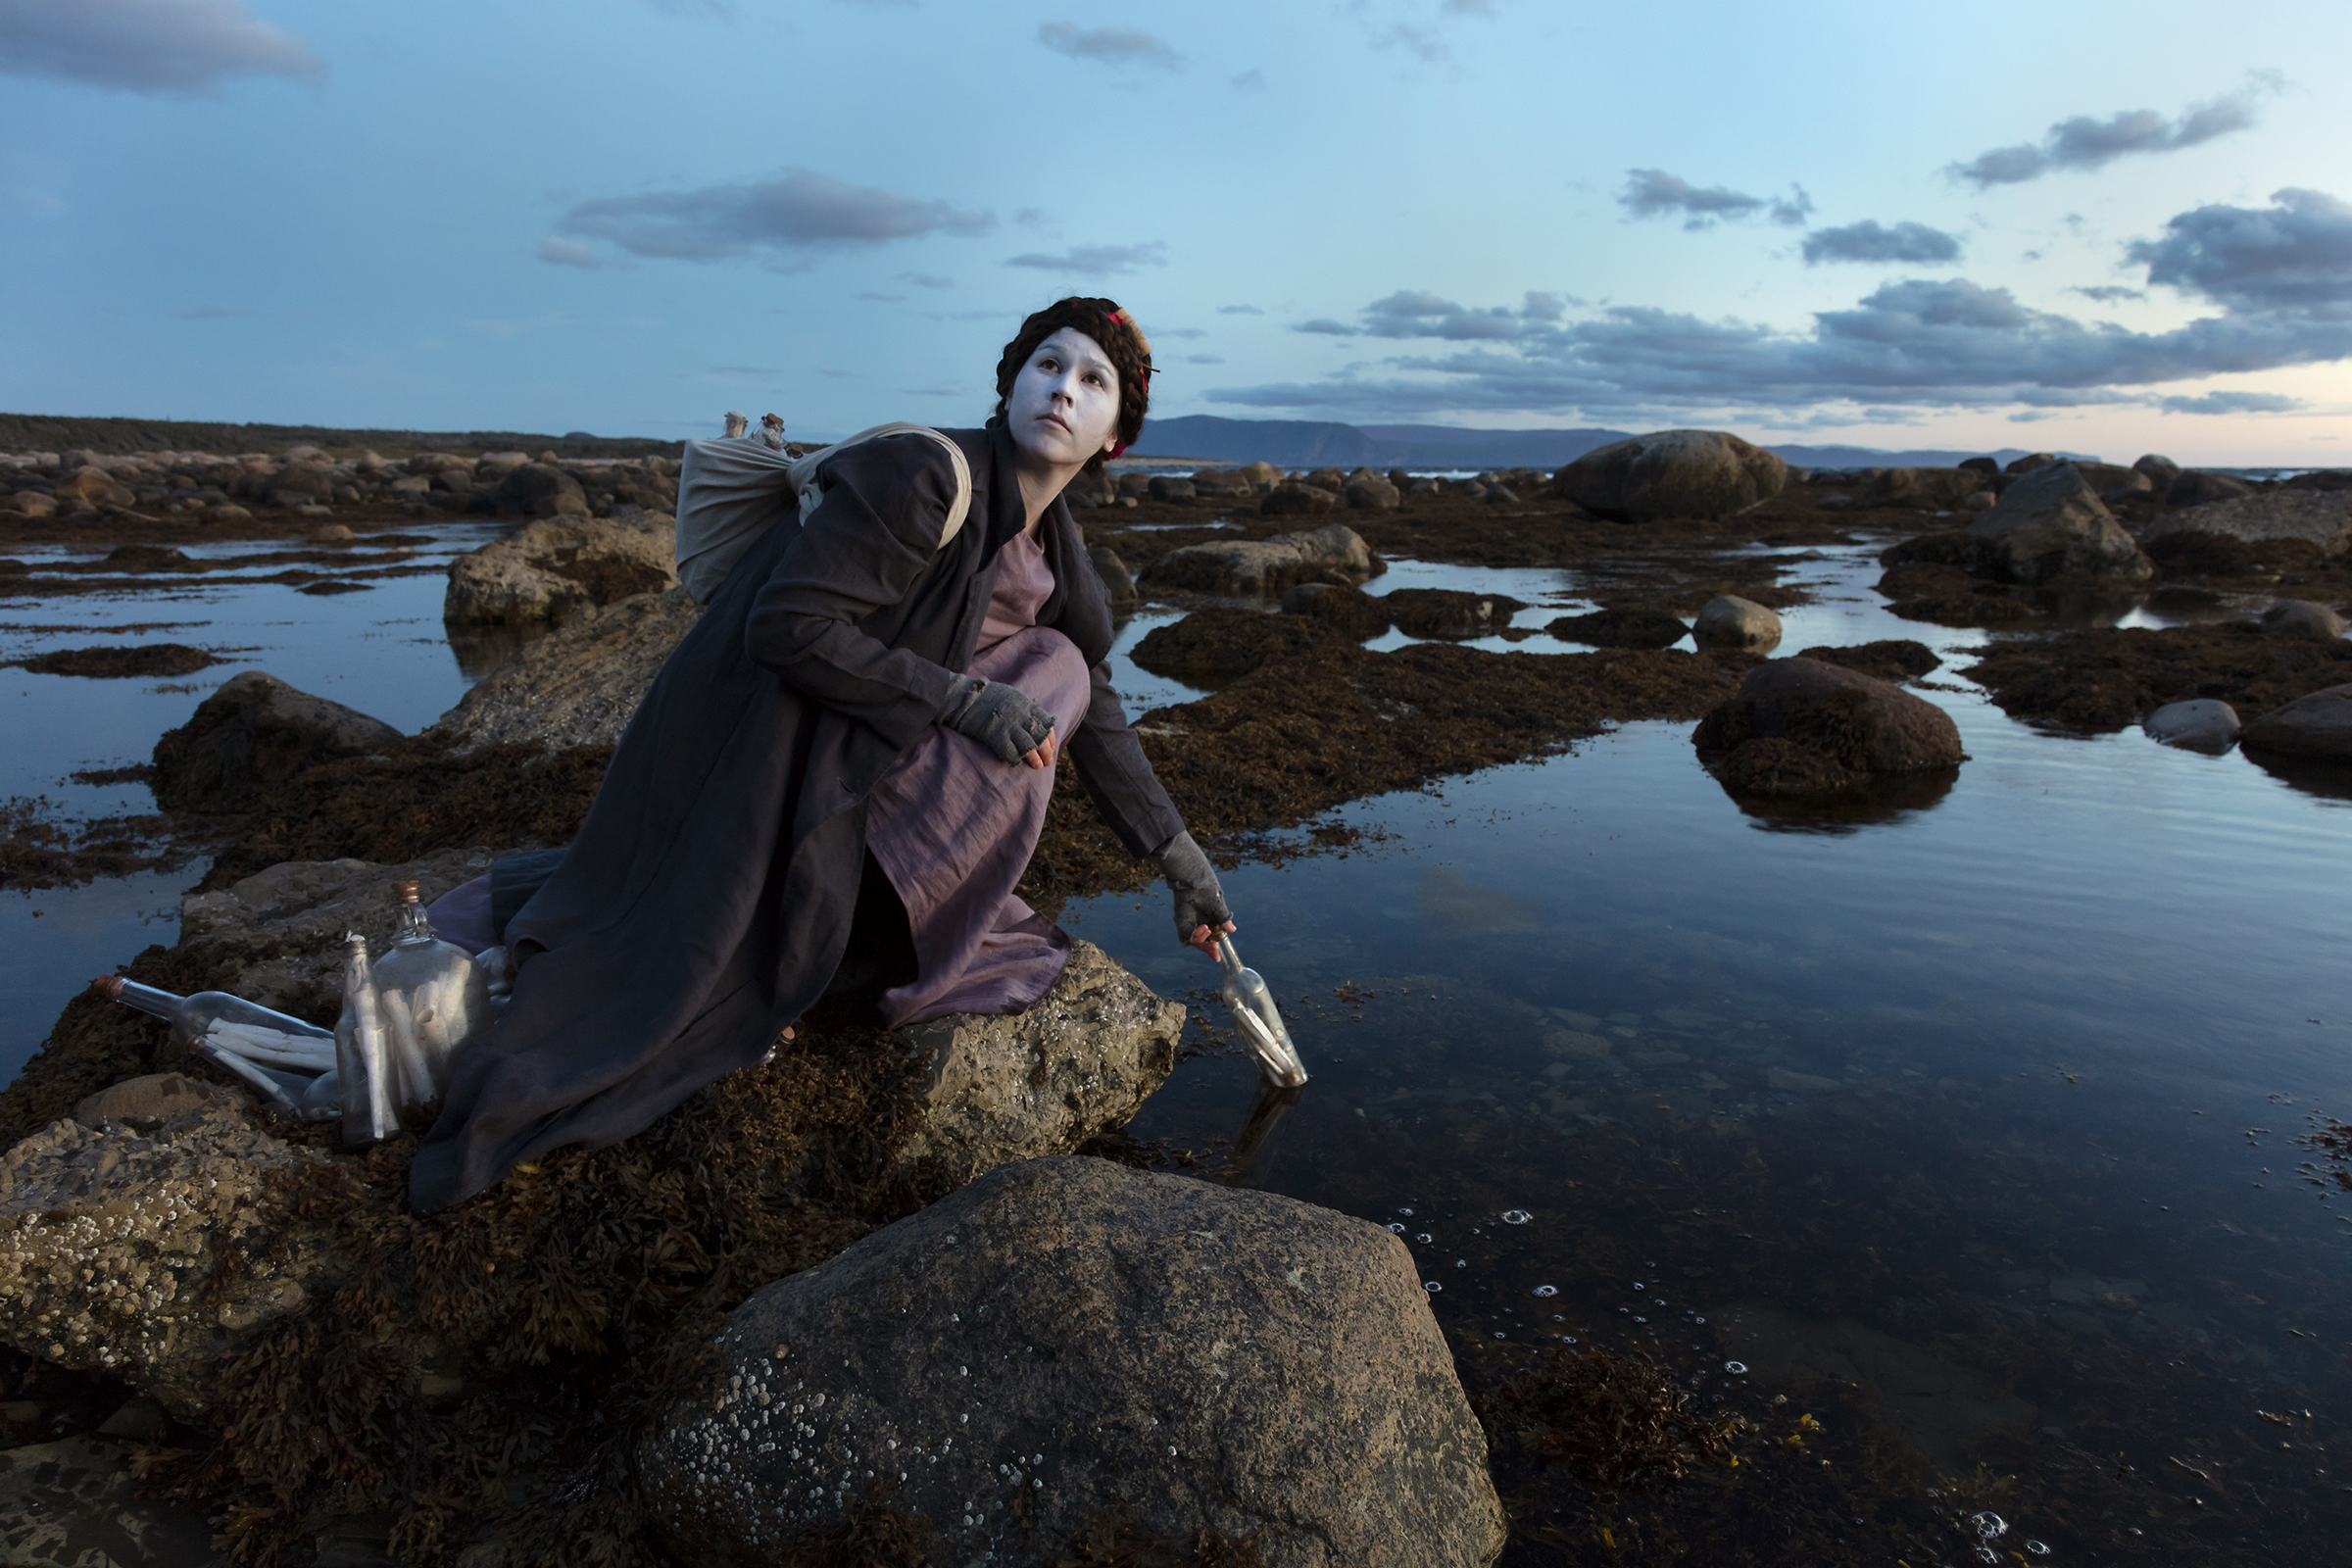 Meryl McMaster, Ordovician Tide I, 2019. From the series As Immense as the Sky. Courtesy of the artist, Stephen Bulger Gallery and Pierre-François Ouellette art contemporain.